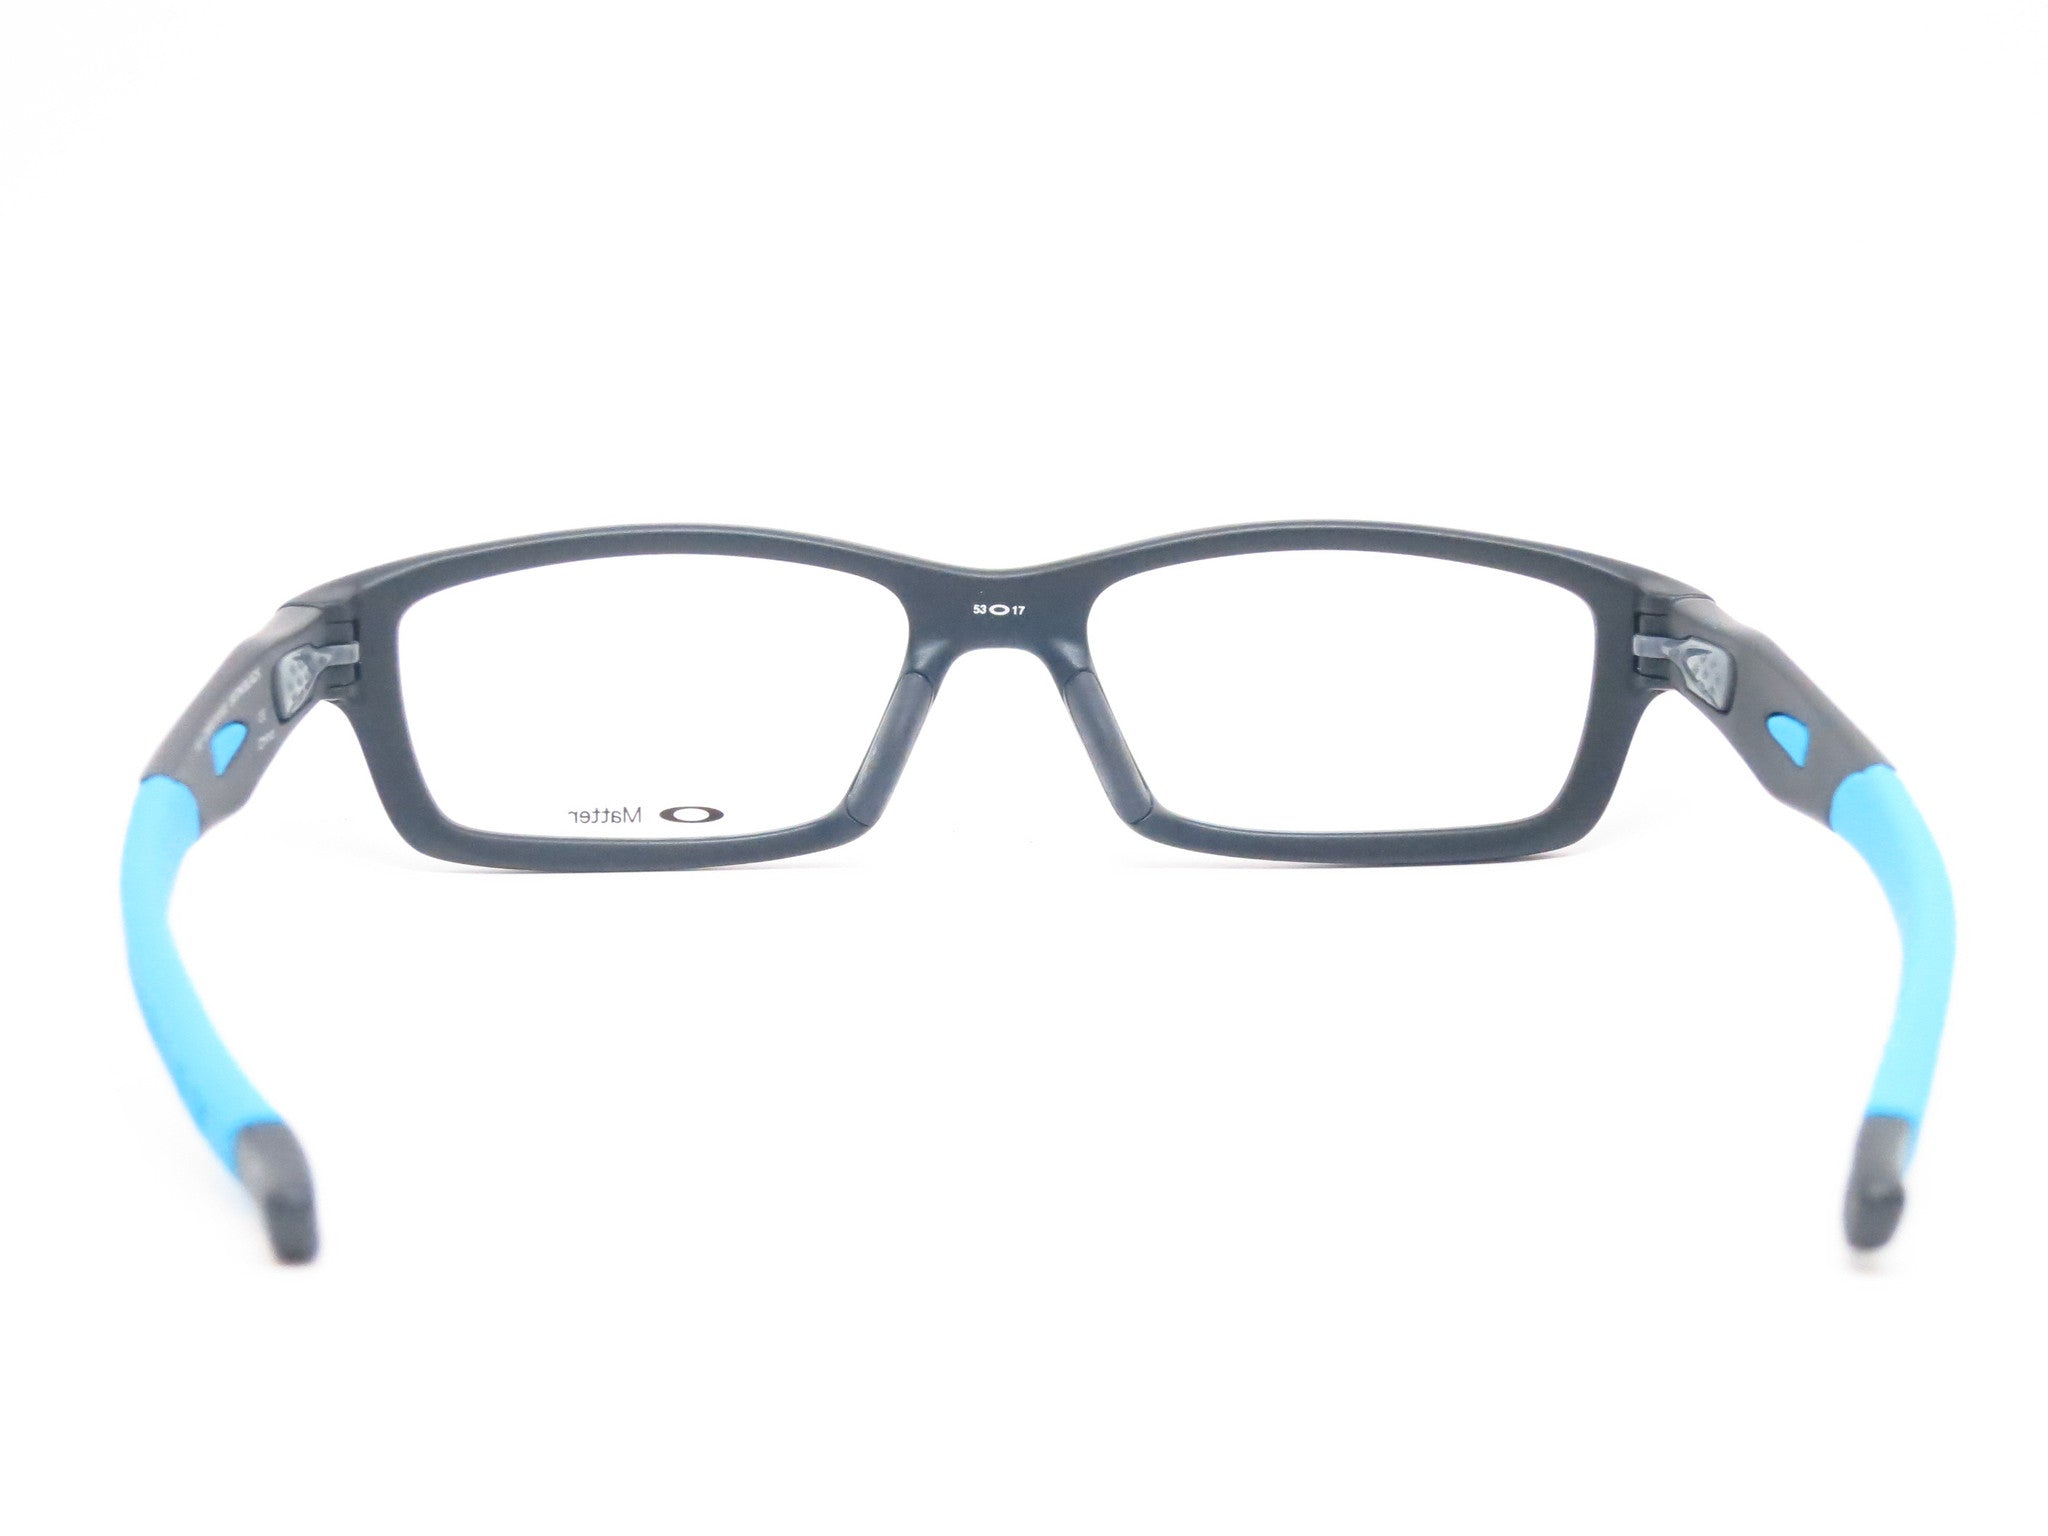 54667930e3b Oakley Wingback Replacement Parts. How To Change Earsocks On Oakley  Sunglasses